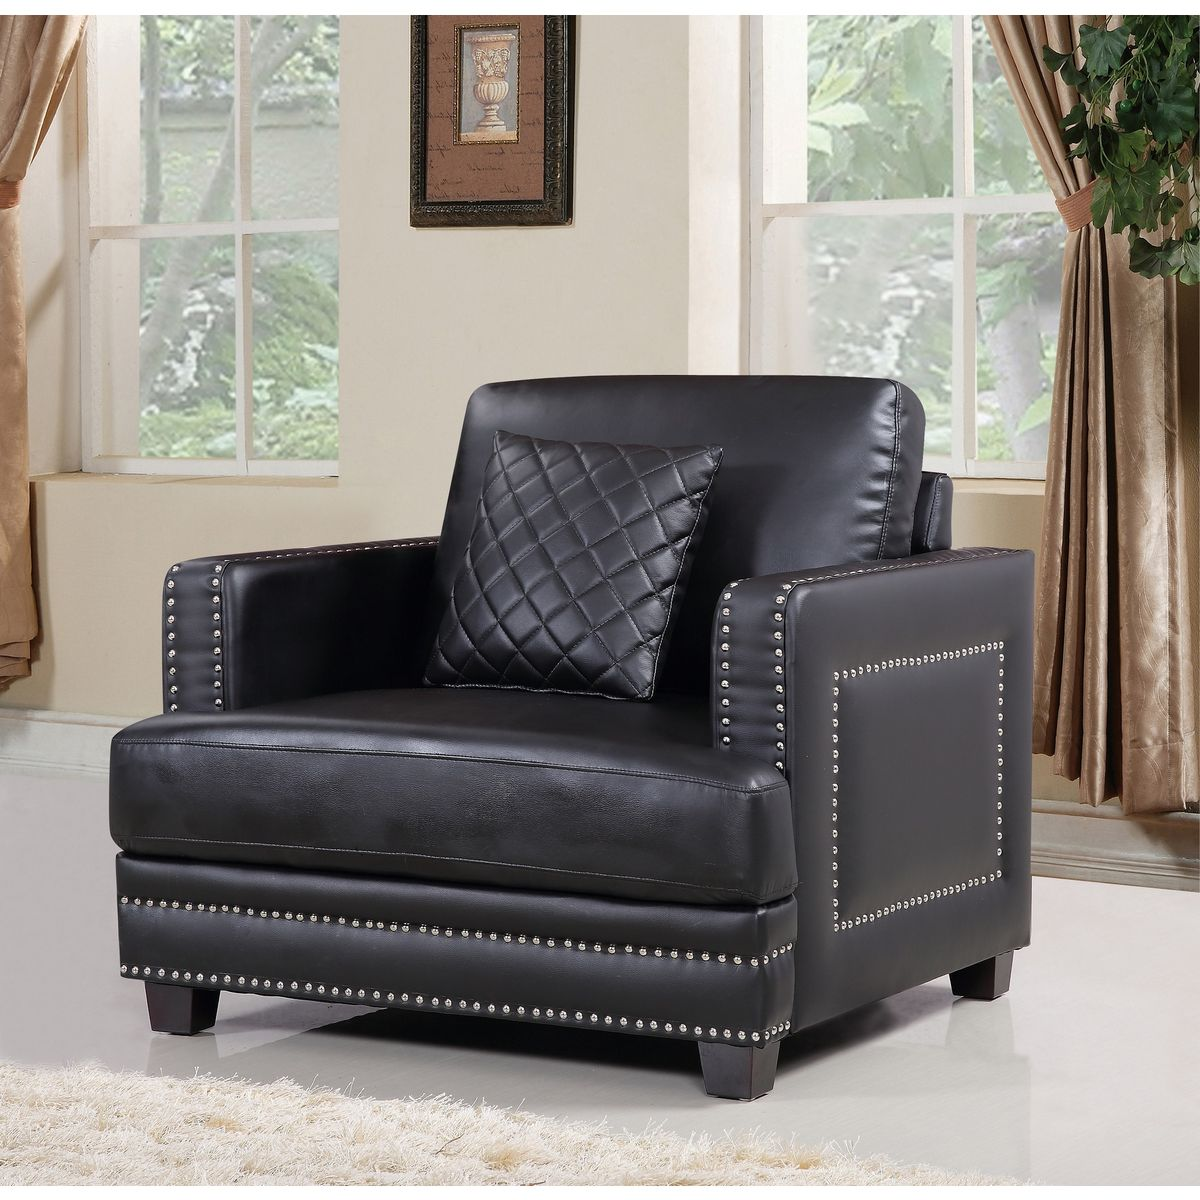 Meridian 655bl C Ferrara Black Leather Arm Chair W Silver